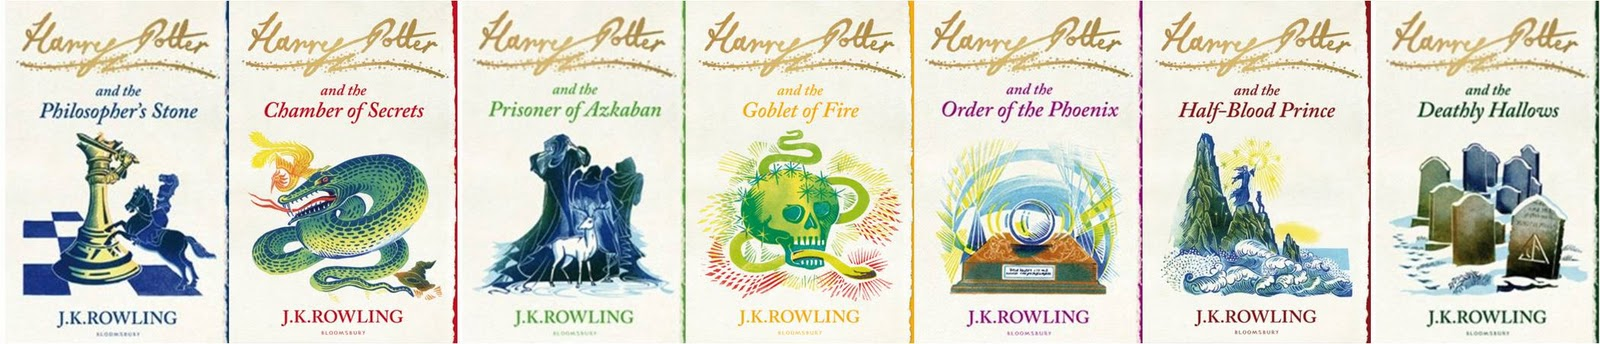 Harry Potter Bloomsbury second edition